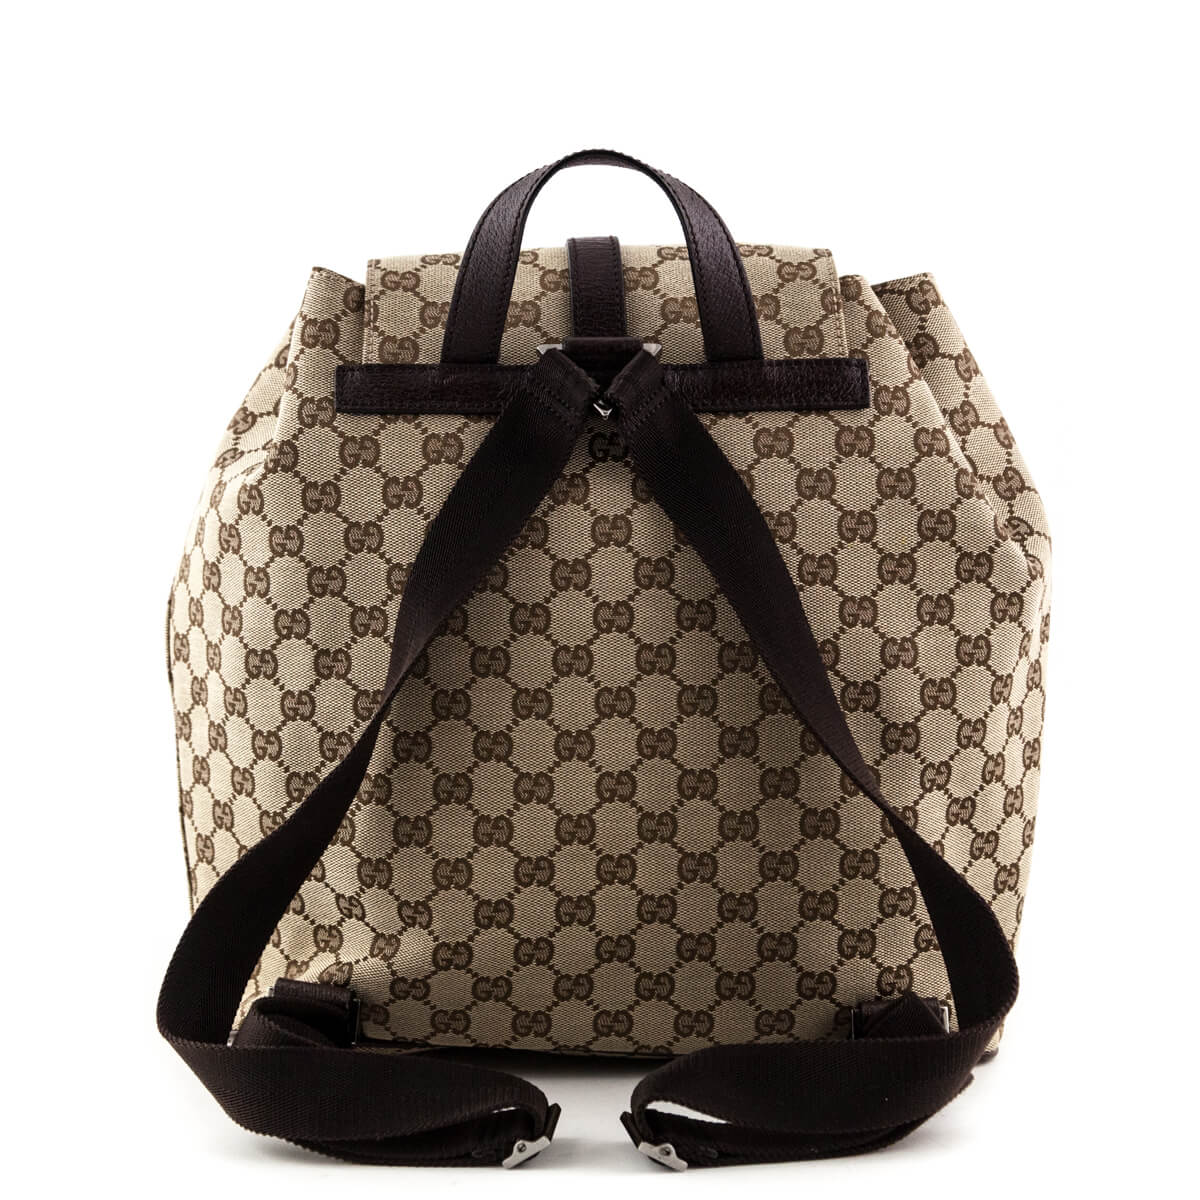 81708064c943f5 ... Gucci GG Canvas Abbey Backpack - LOVE that BAG - Preowned Authentic  Designer Handbags ...